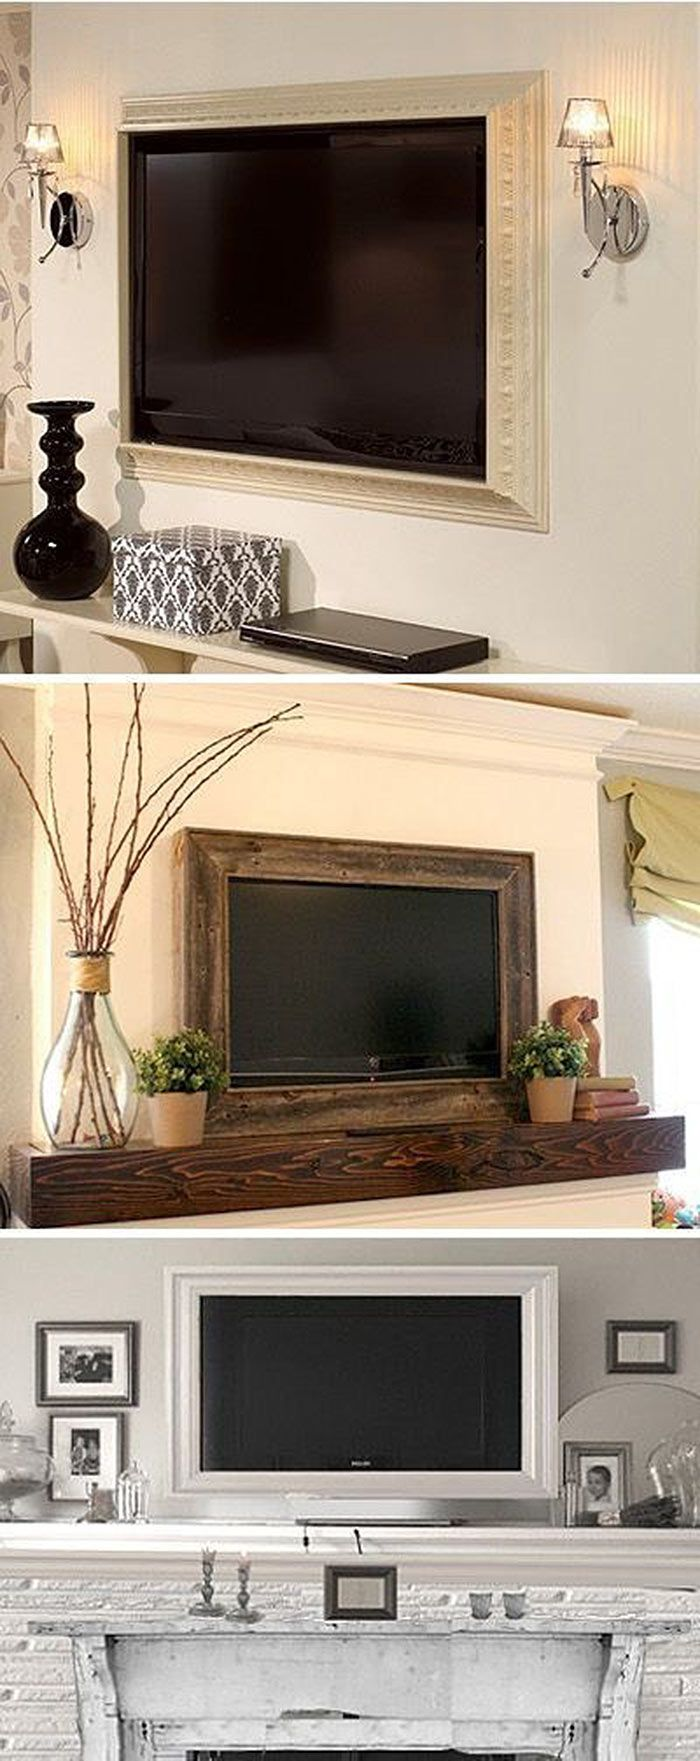 Christmas mantel decorations under tv - Christmas Mantel Decorations Under Tv 58